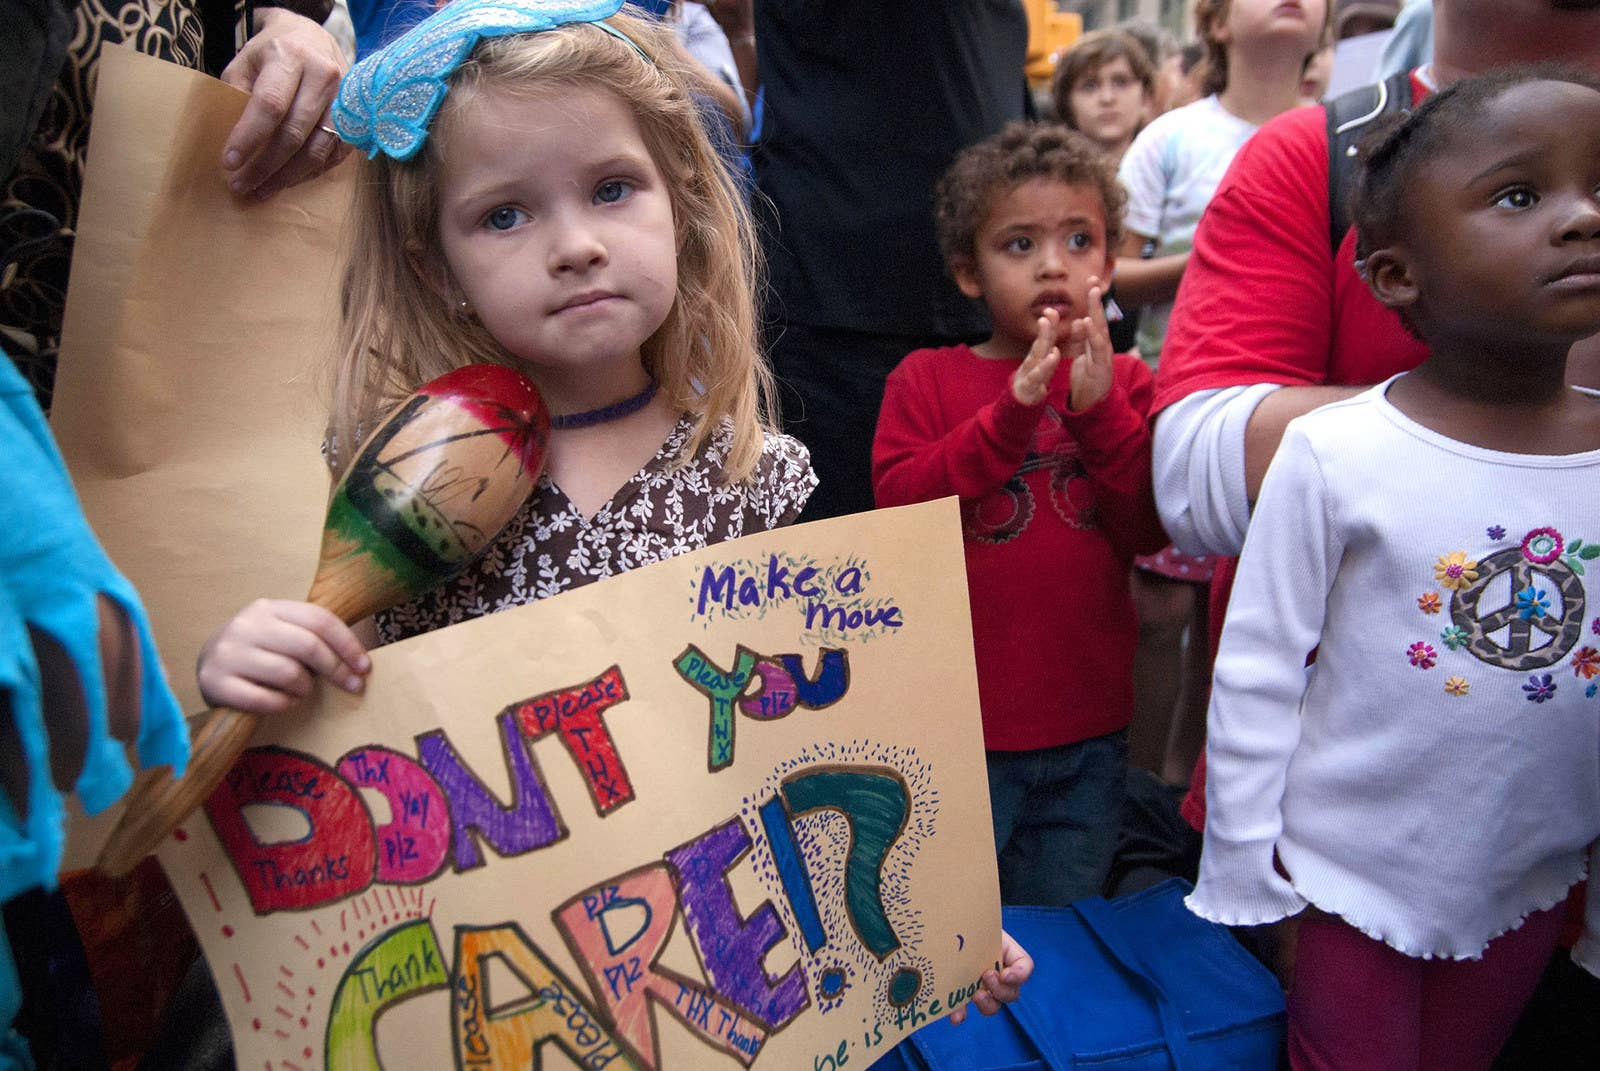 Schoolchildren attend an Occupy Wall Street protest with their parents in Zuccotti Park on Oct. 10, 2011.